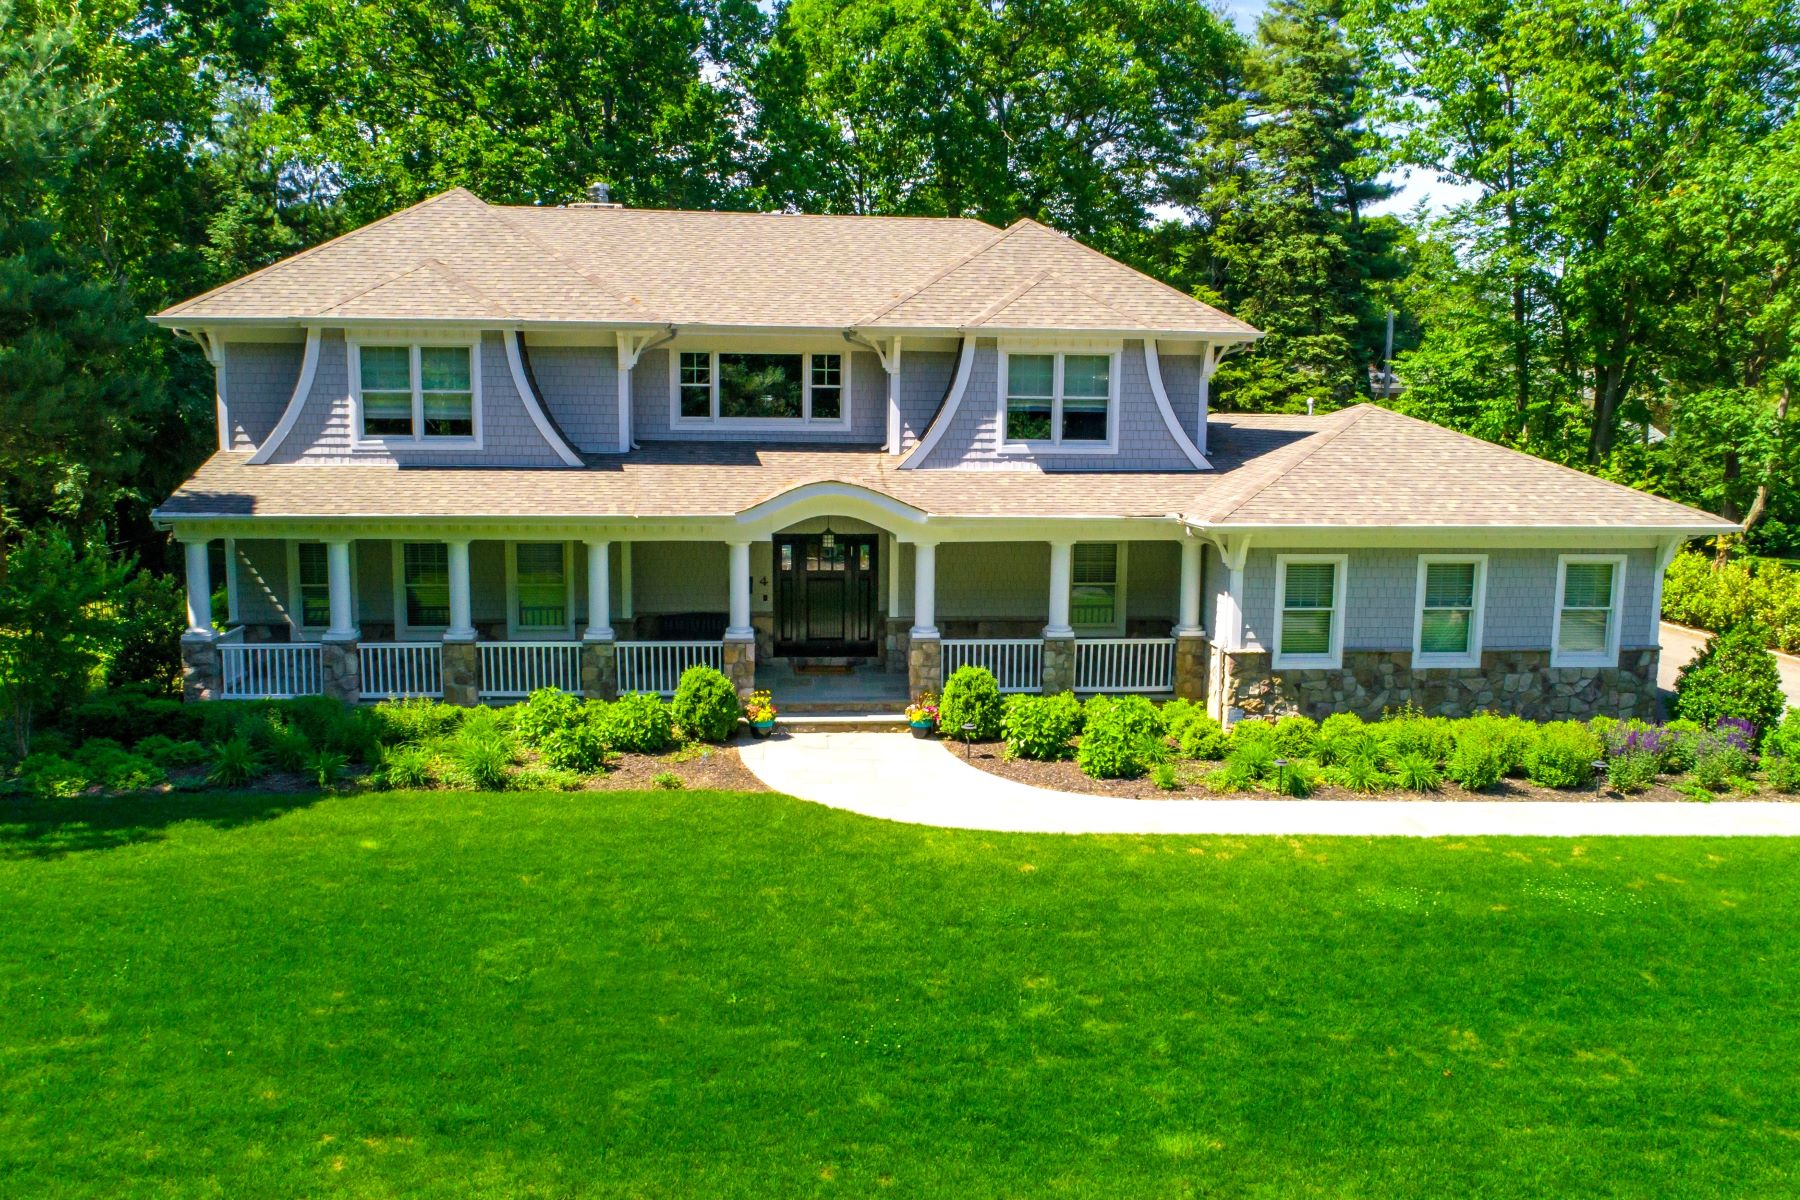 Single Family Homes for Sale at East Hills 4 Melby Lane East Hills, New York 11576 United States